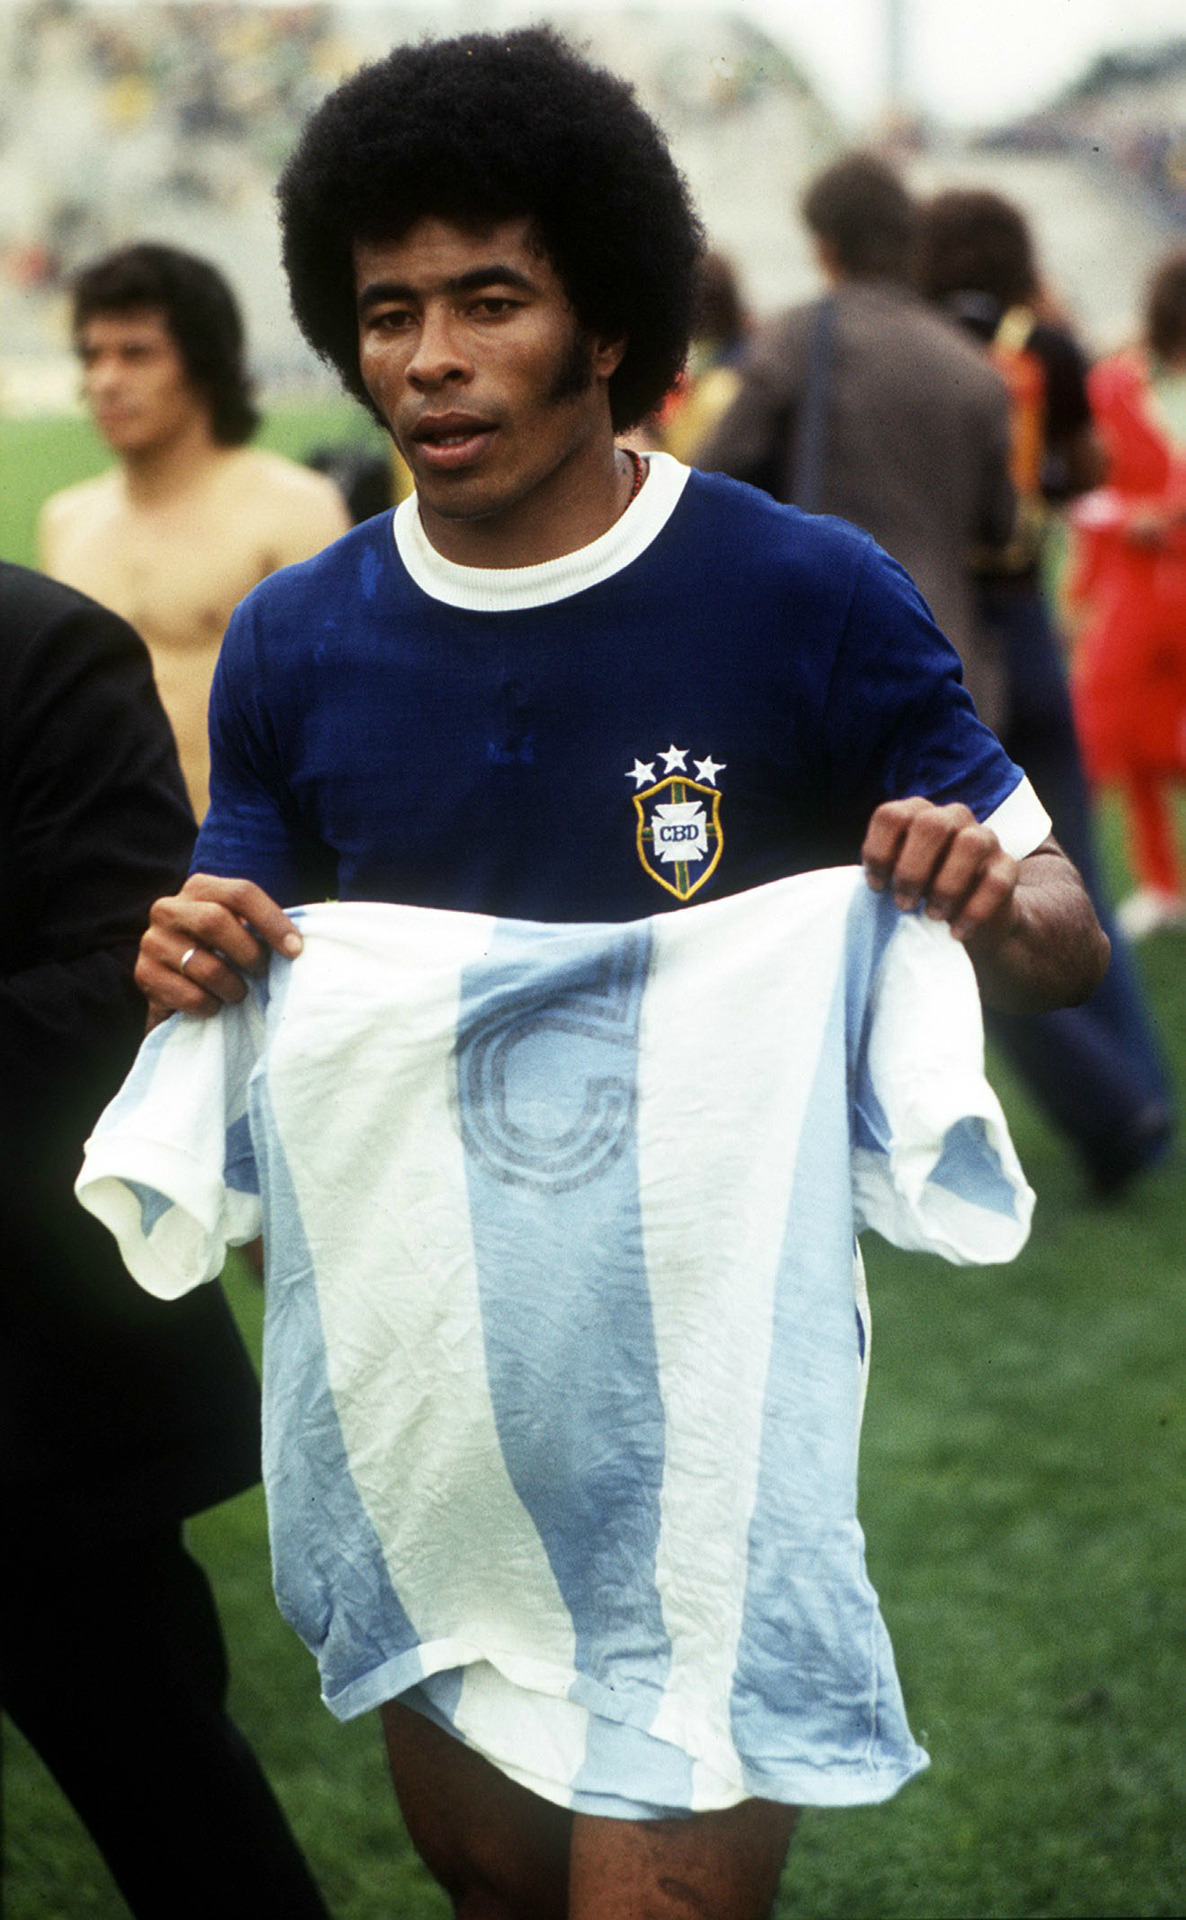 Jairzinho, leaving the pitch with Ángel Bargas' kit after scoring the winning goal against Argentina, World Cup 1974.